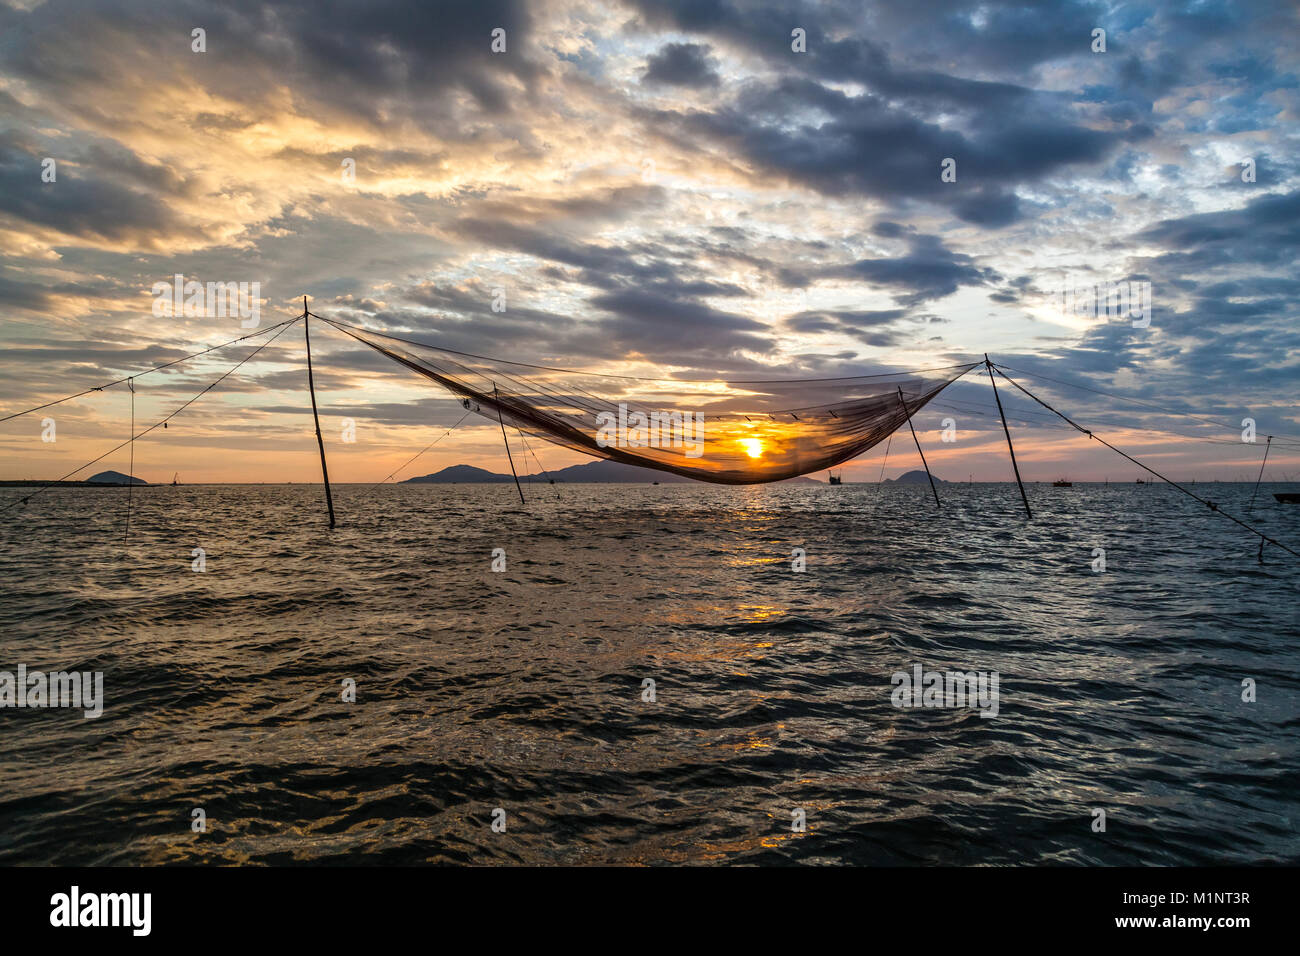 Sunrise over a traditional hanging fishing net in the sea, at the entrance to Thu Bon River, Hoi An, Vietnam - Stock Image